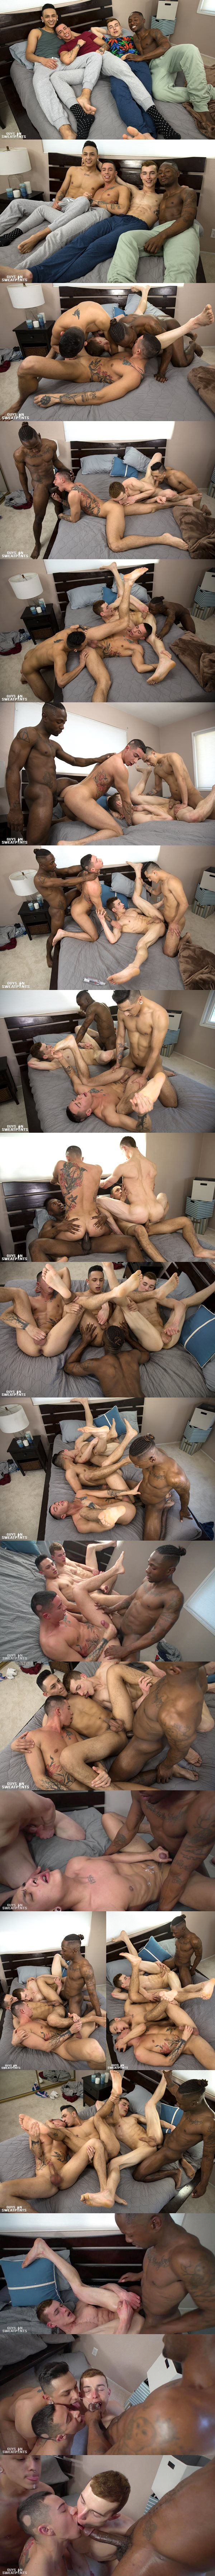 Miller Axton barebacks Hoss Kado, Mateo Vice and Vincent O'Reilly in That Orgy Though at Guysinsweatpants 02